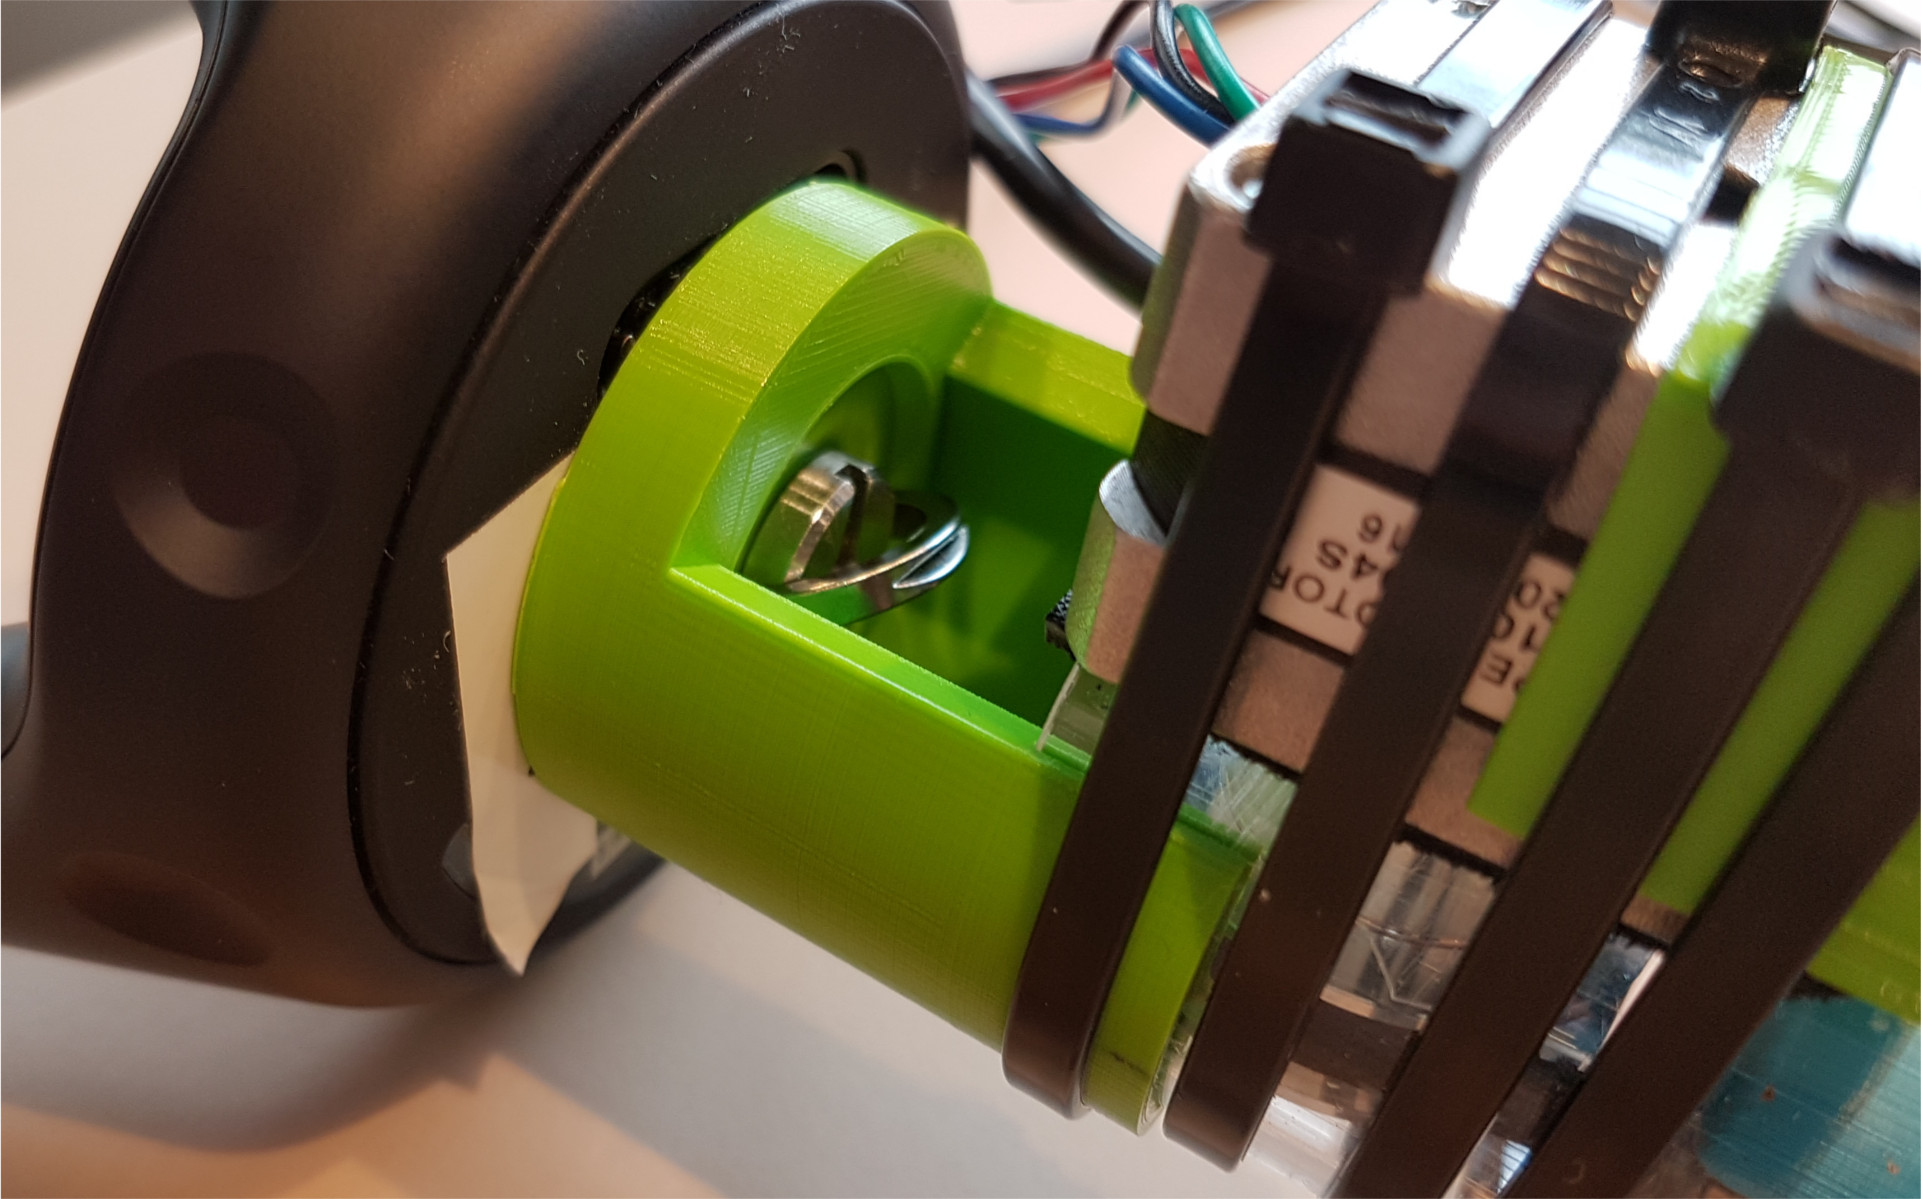 the grip mount for the Vive tracker